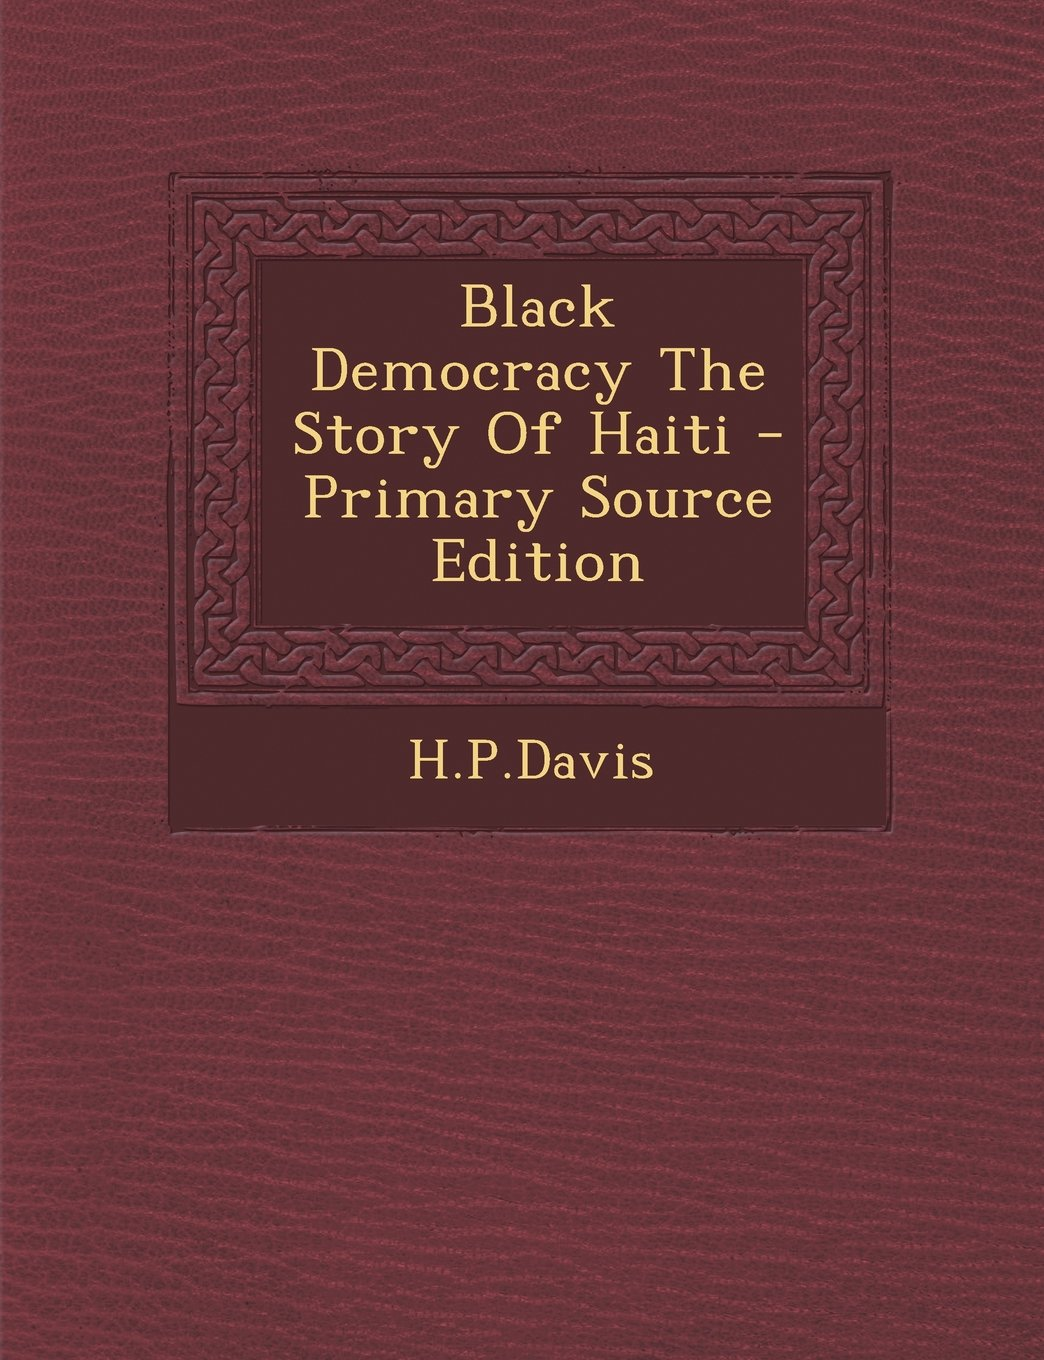 Black Democracy the Story of Haiti - Primary Source Edition